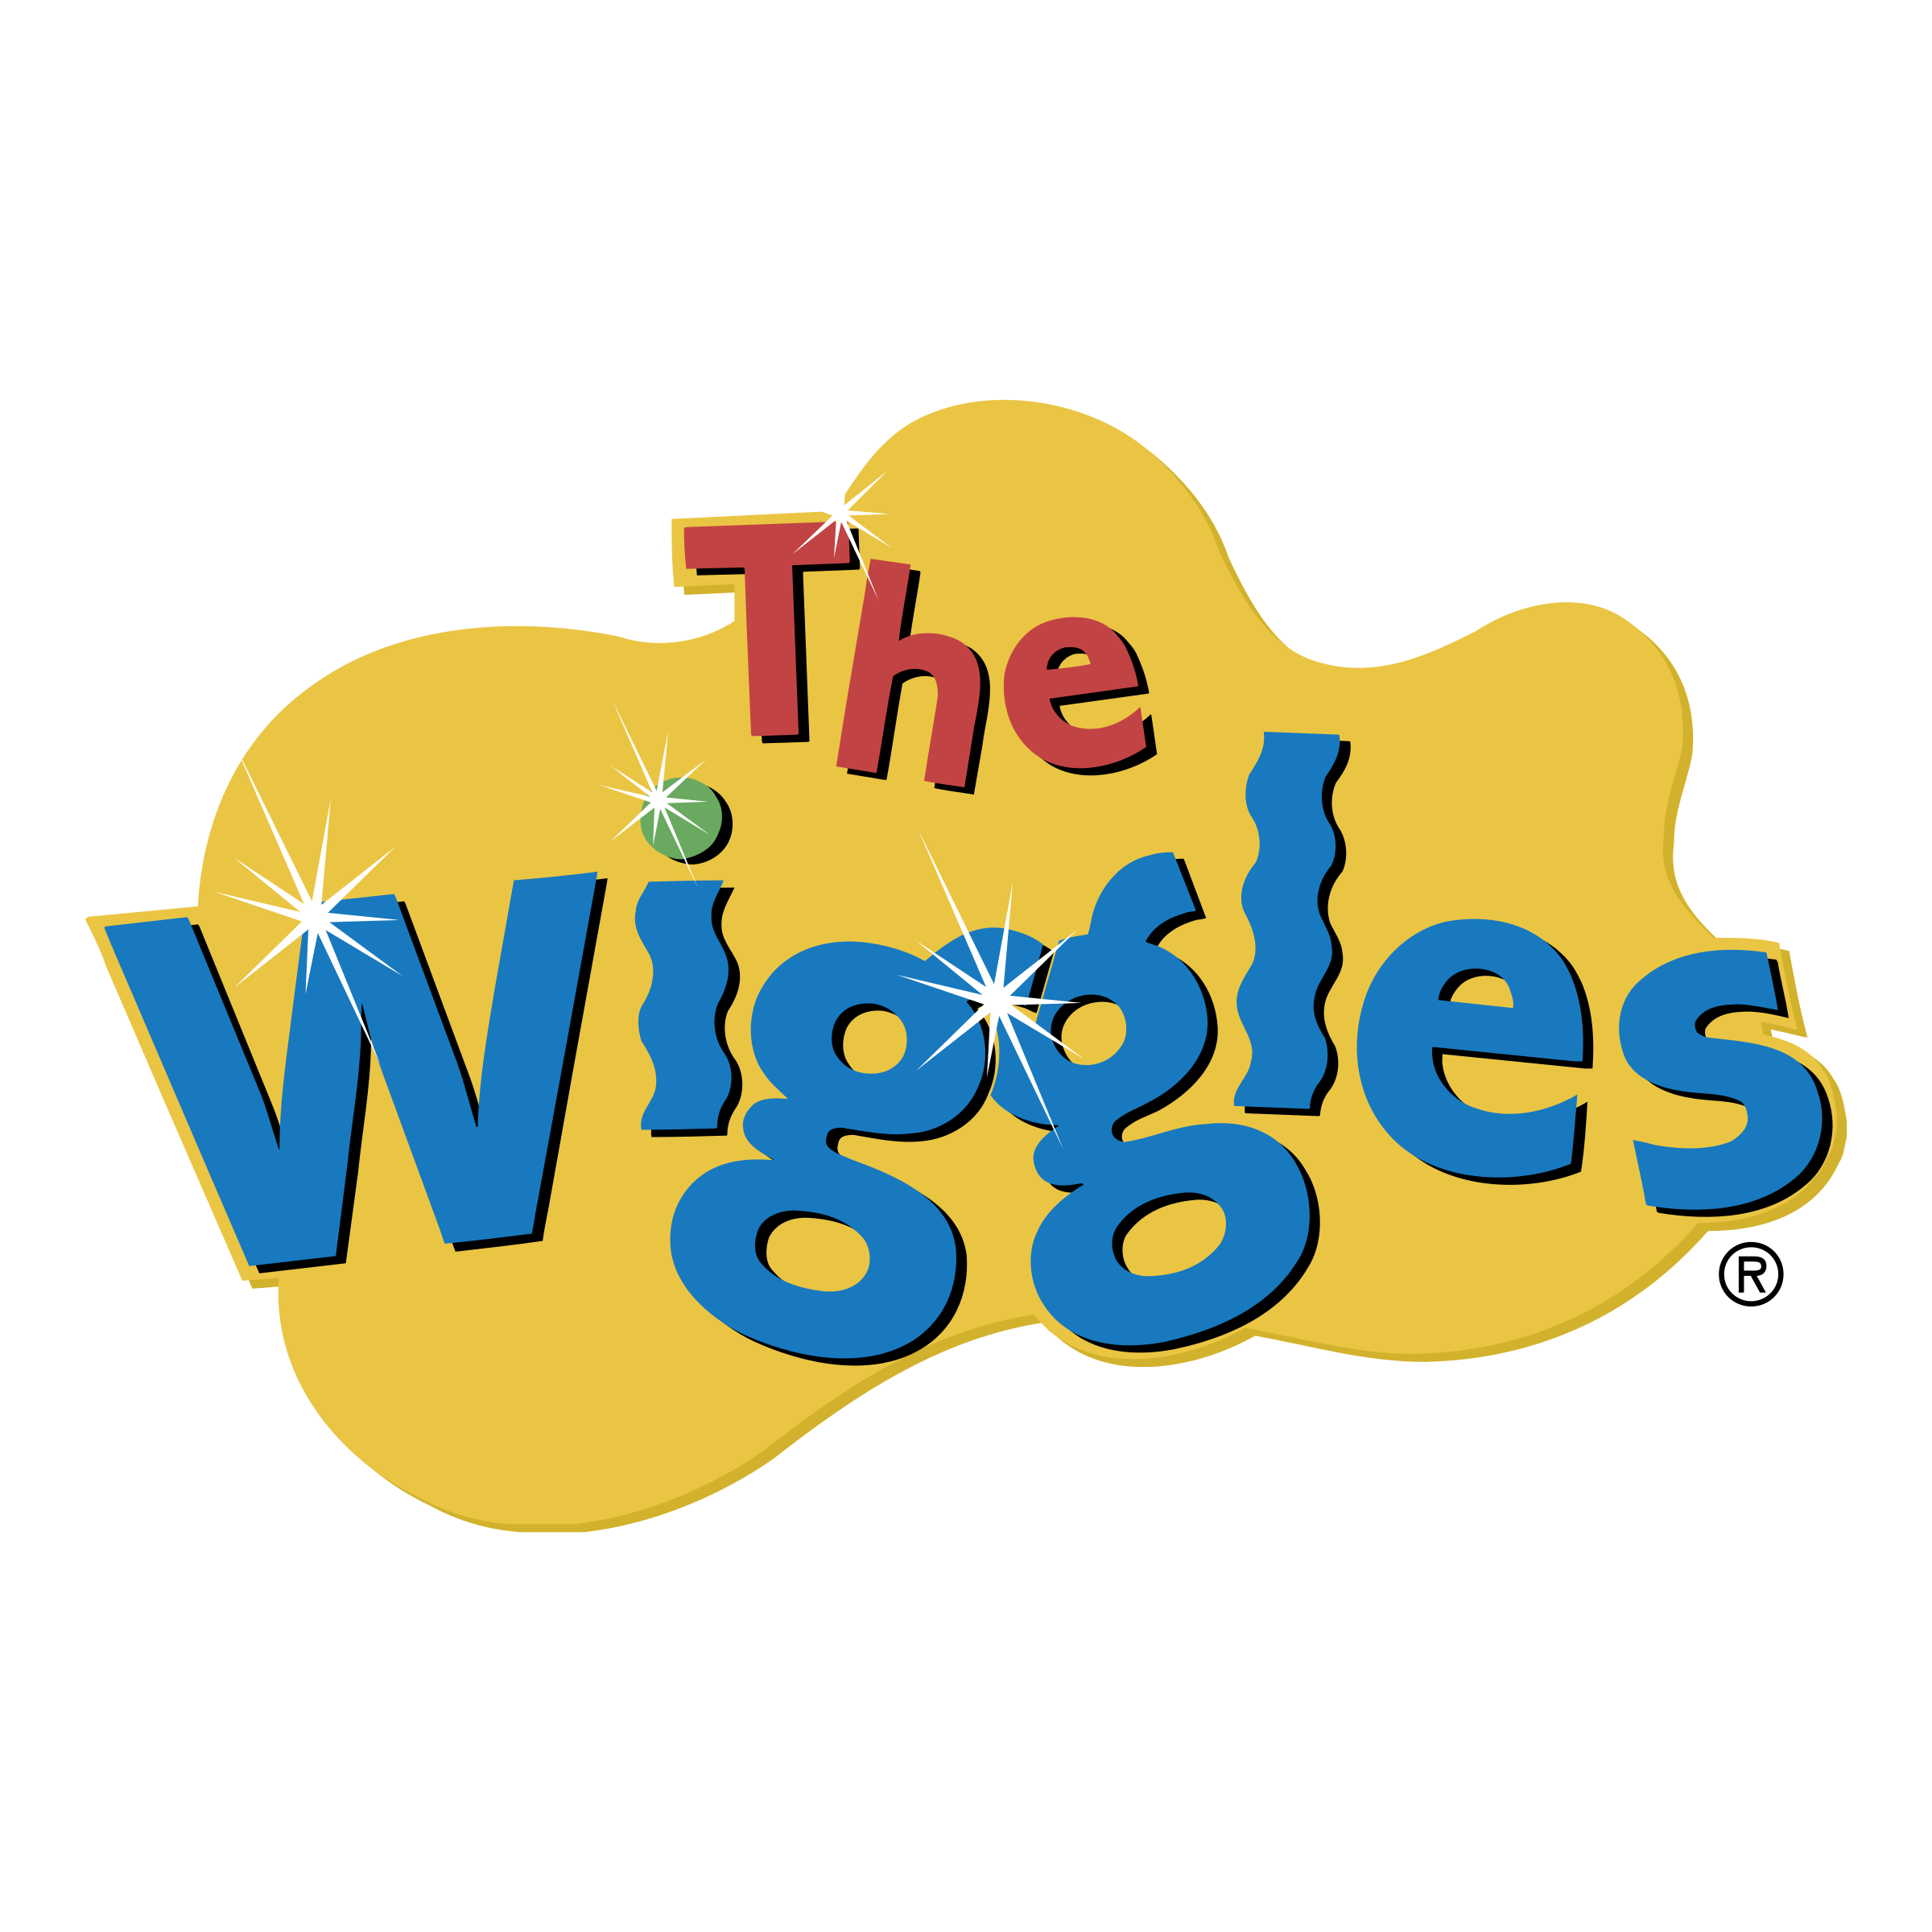 the wiggles logo png transparent amp svg vector freebie supply